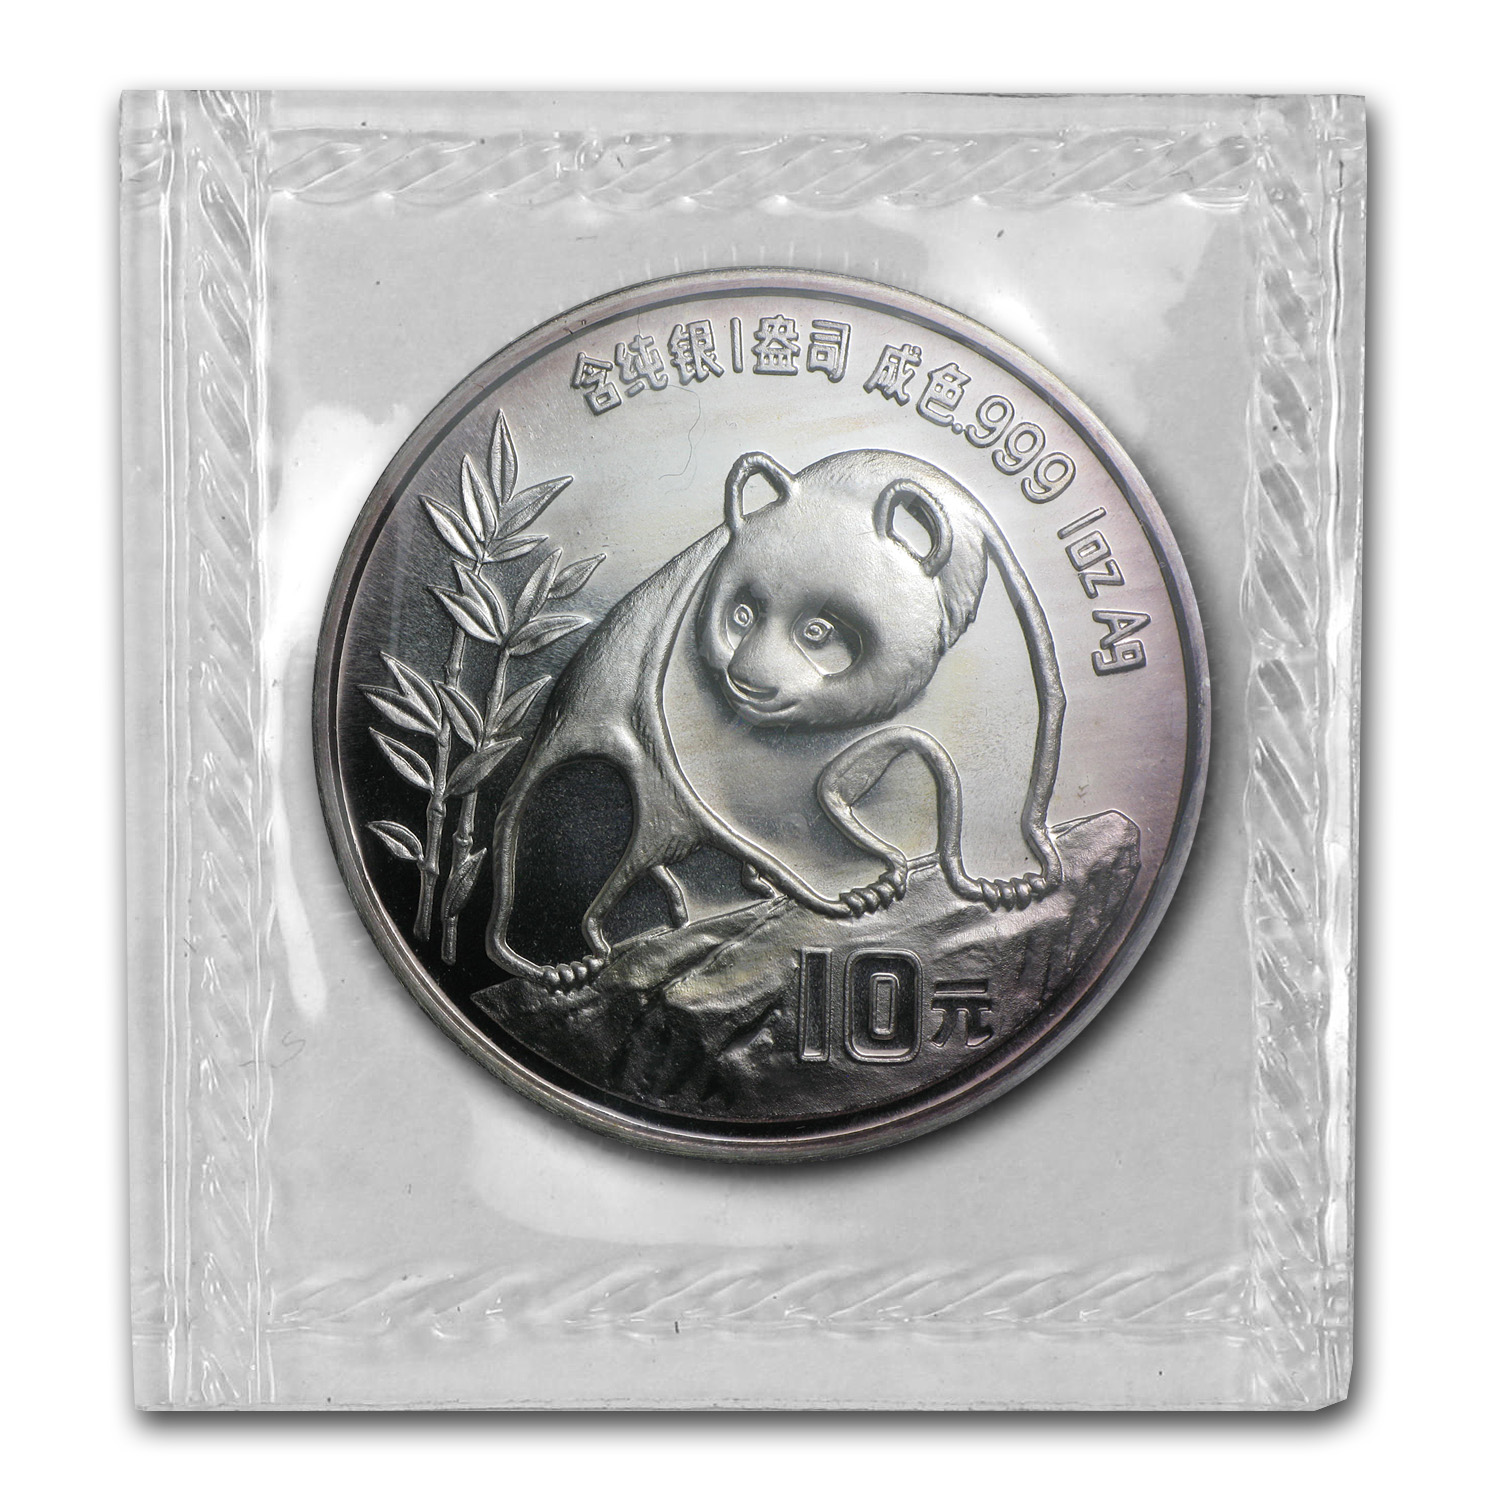 1990 1 oz Silver Chinese Panda - (Sealed) - Large Date